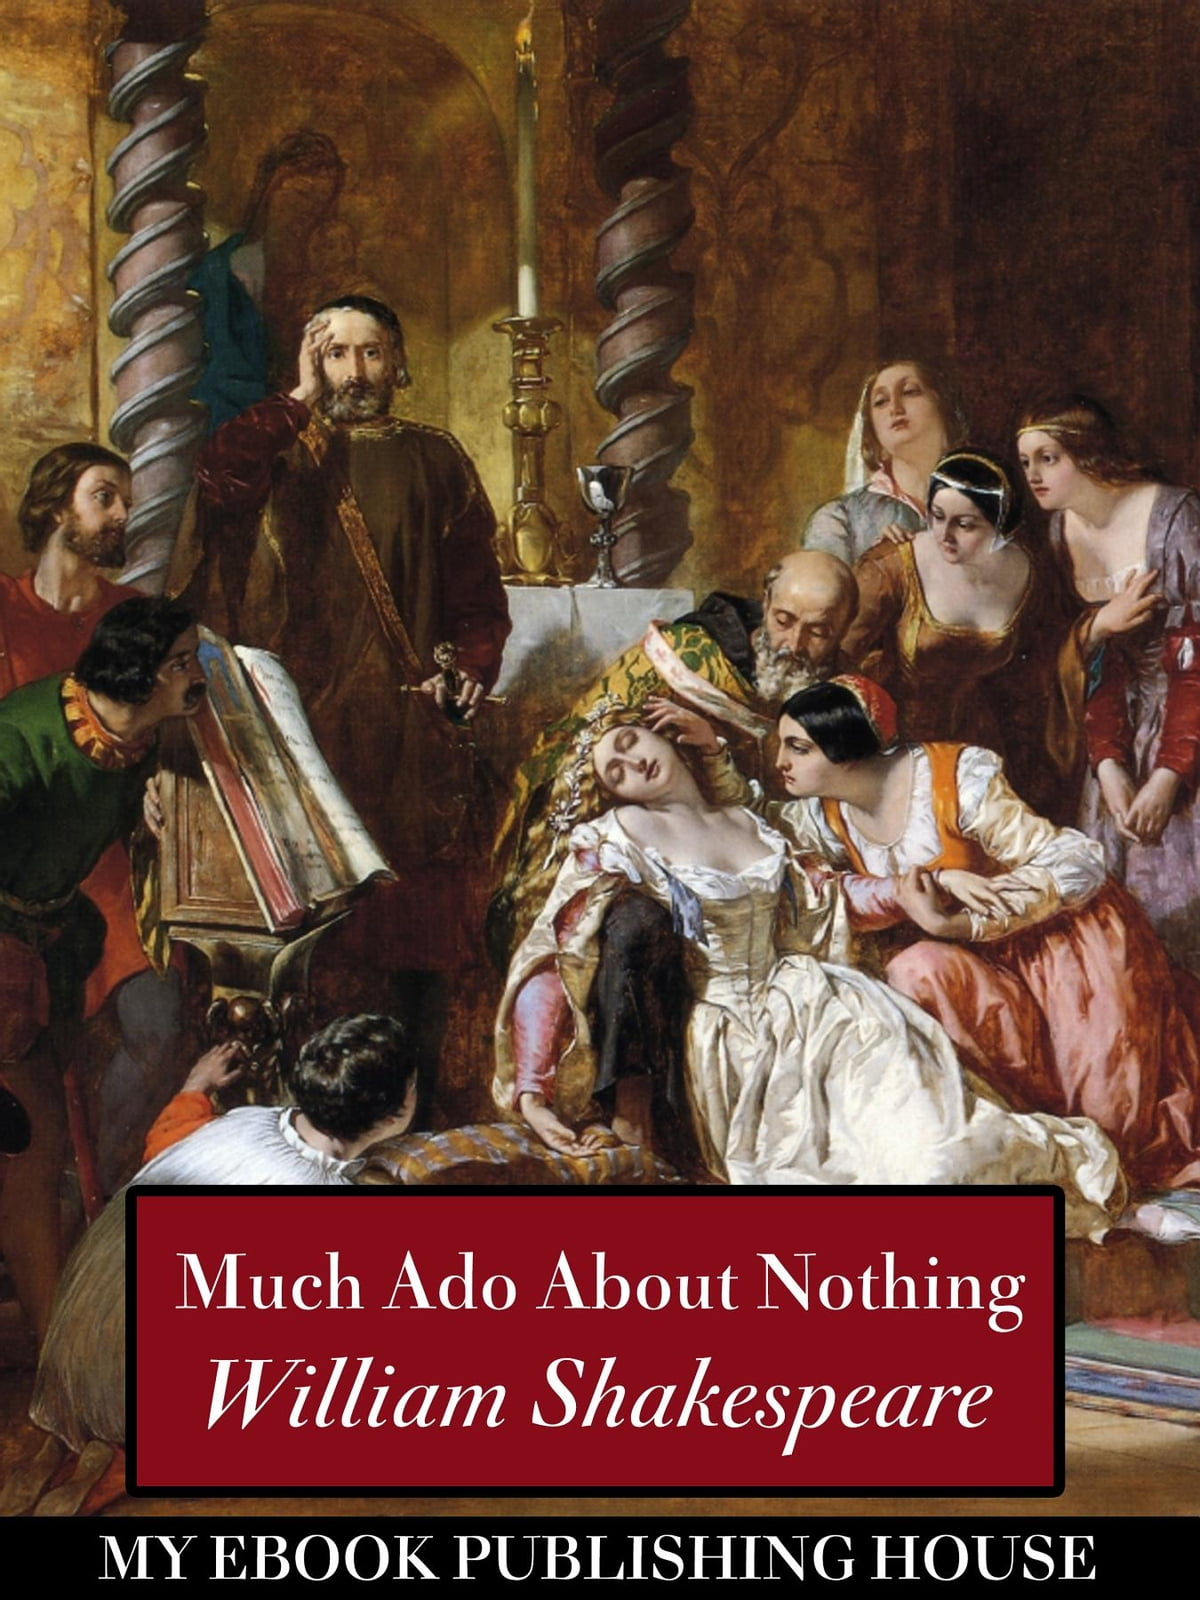 a literary analysis of comedy in much ado about nothing by william shakespeare But much ado about nothing looks at first glance like a tightly-plotted, well-made romantic comedy, closer to the work of richard curtis than to anything by the author of king lear.